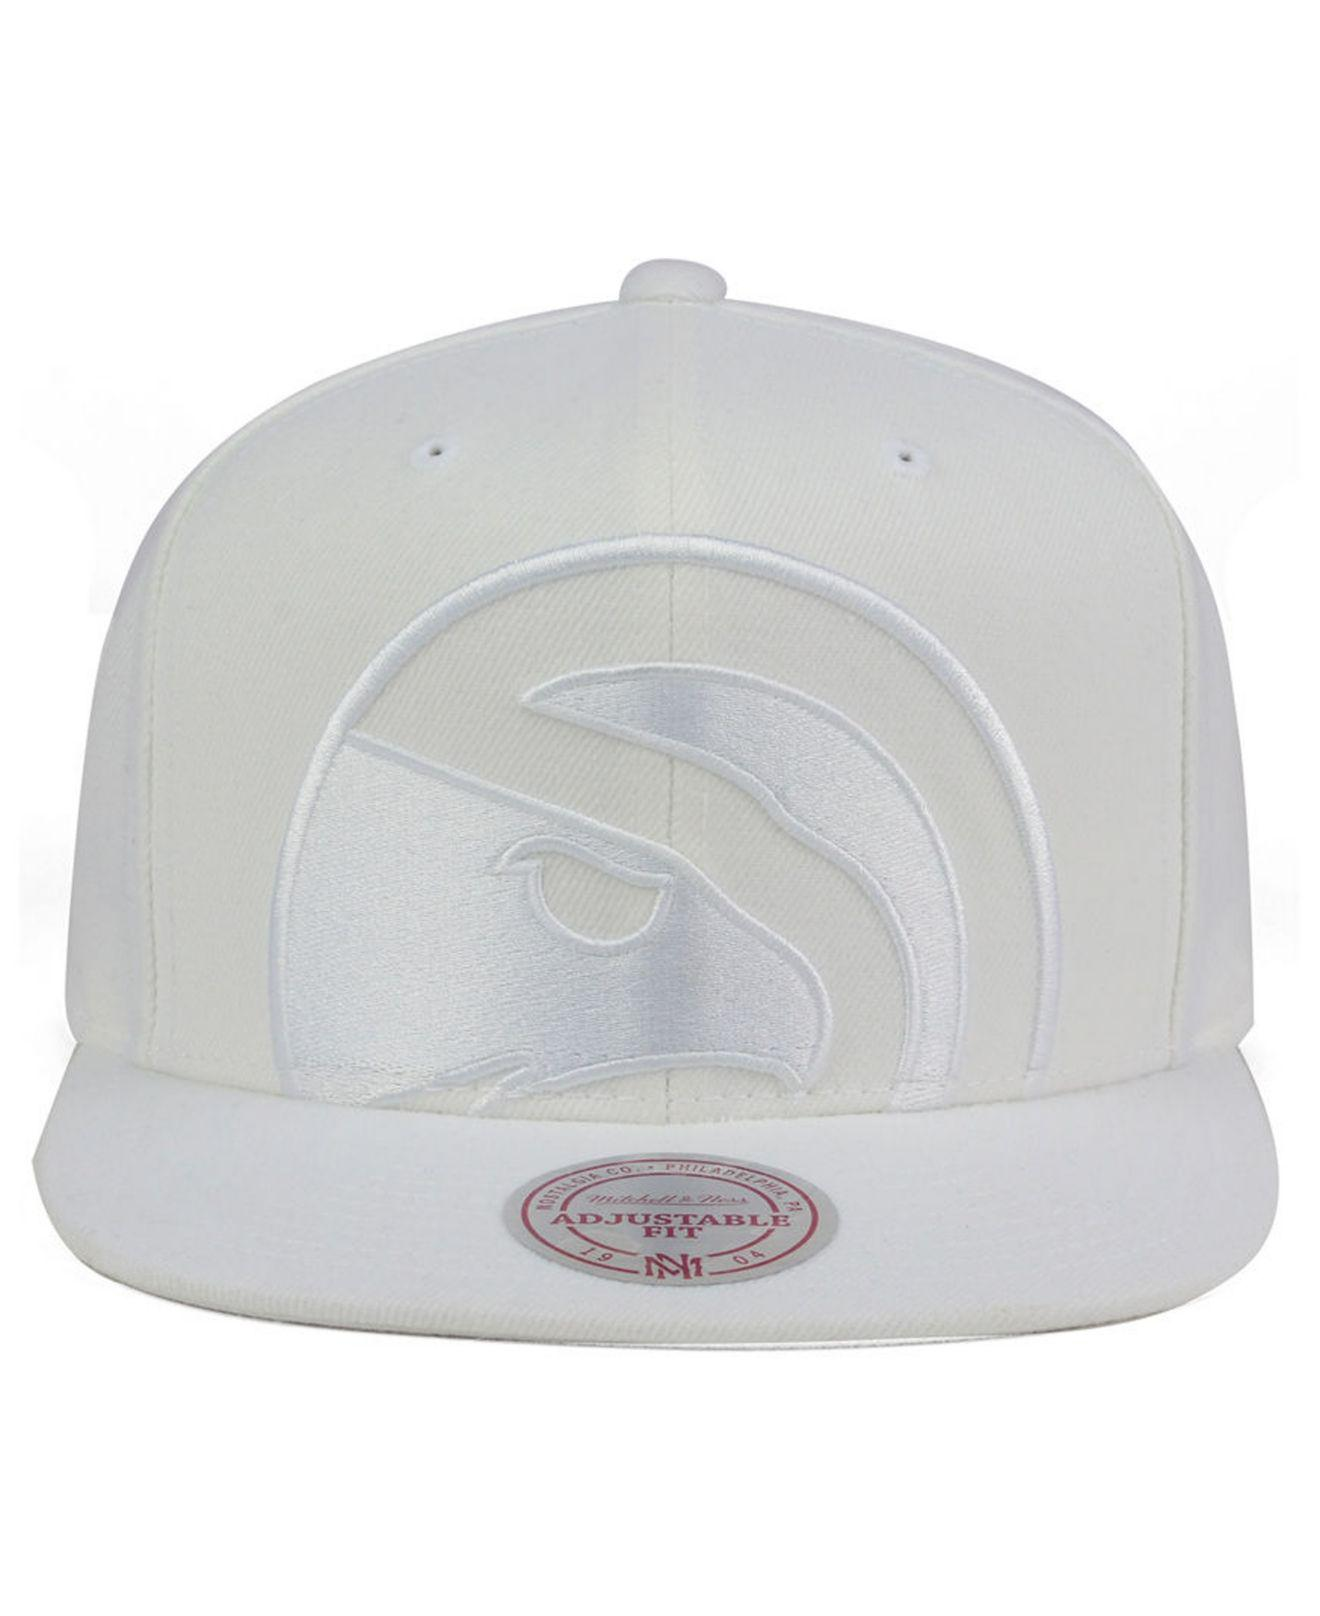 new products fdc83 710af ... promo code lyst mitchell ness atlanta hawks cropped xl logo snapback cap  in white for men